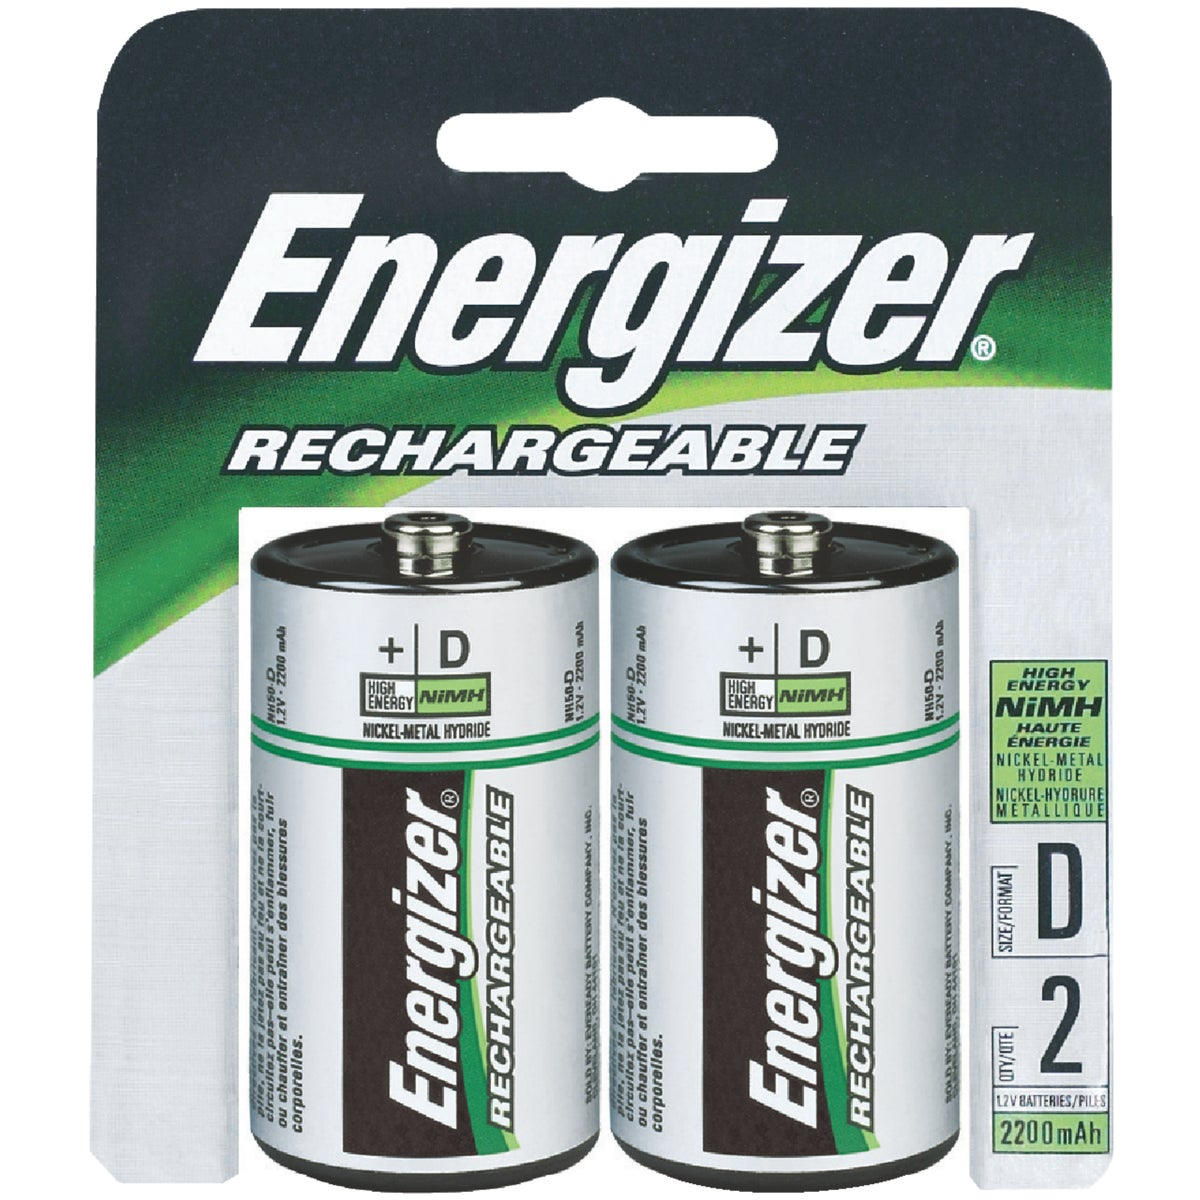 2CD D RECHARGE BATTERY - NH50BP2(R2) by Energizer